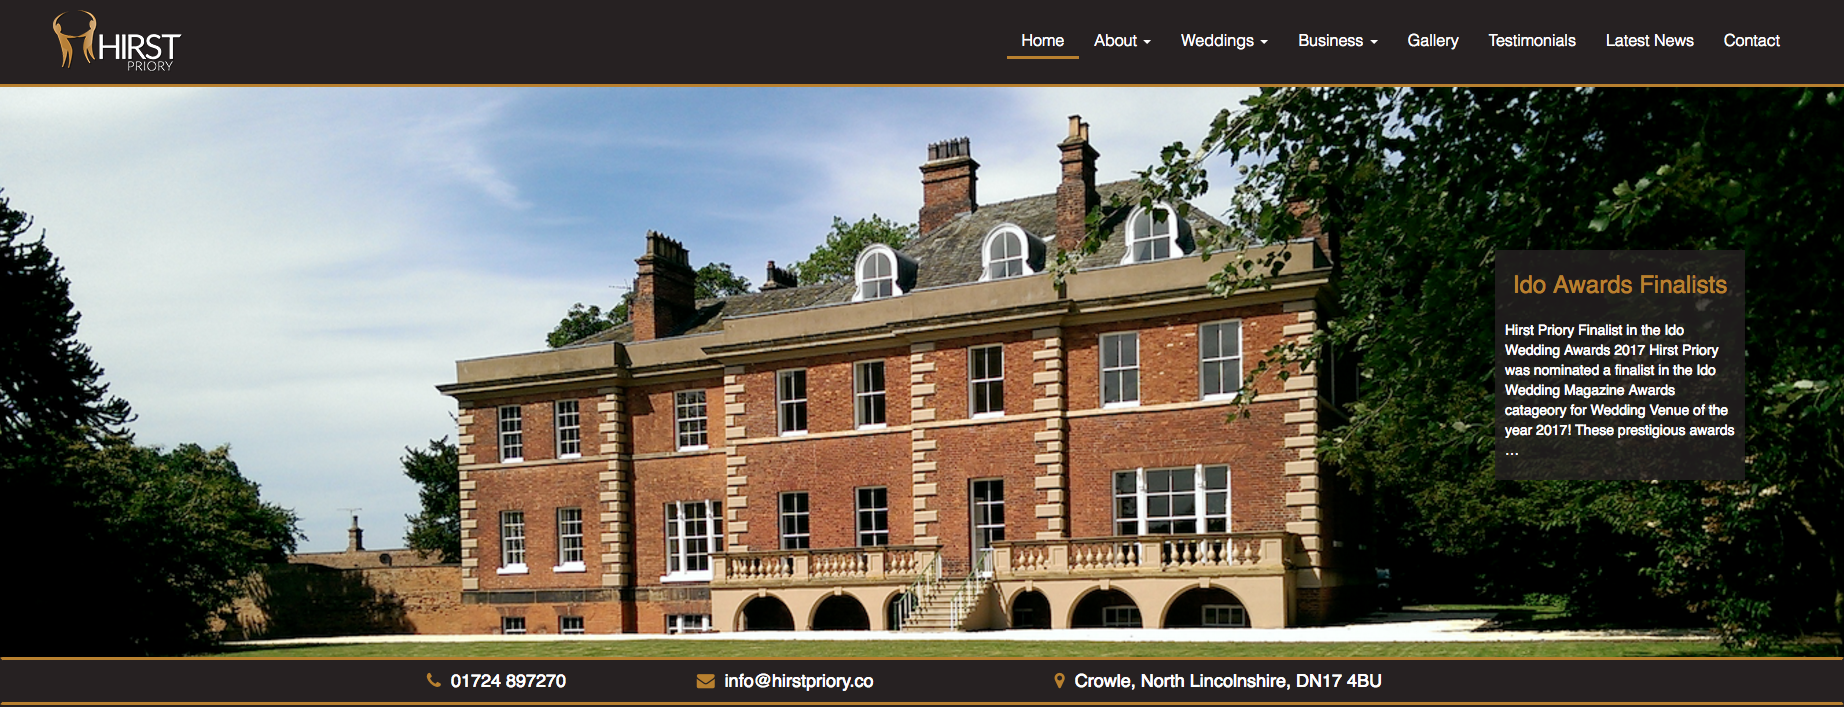 Hirst Priory | Front Page Header